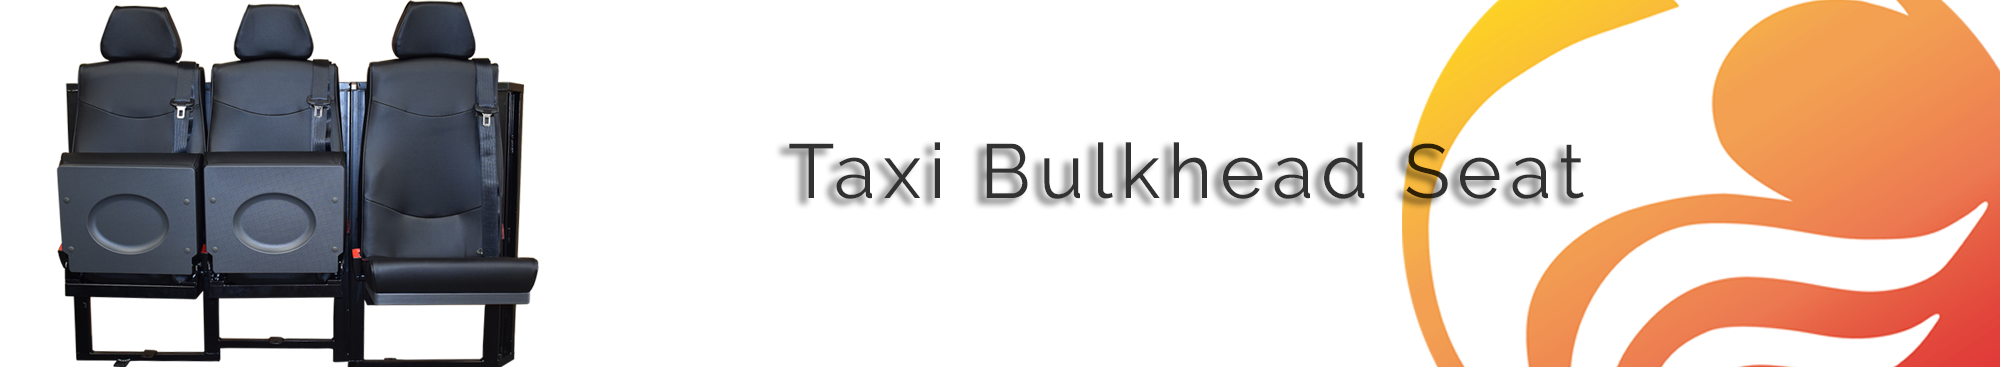 Taxi Bulkhead 3 Seater SYstem - Phoenix Seating